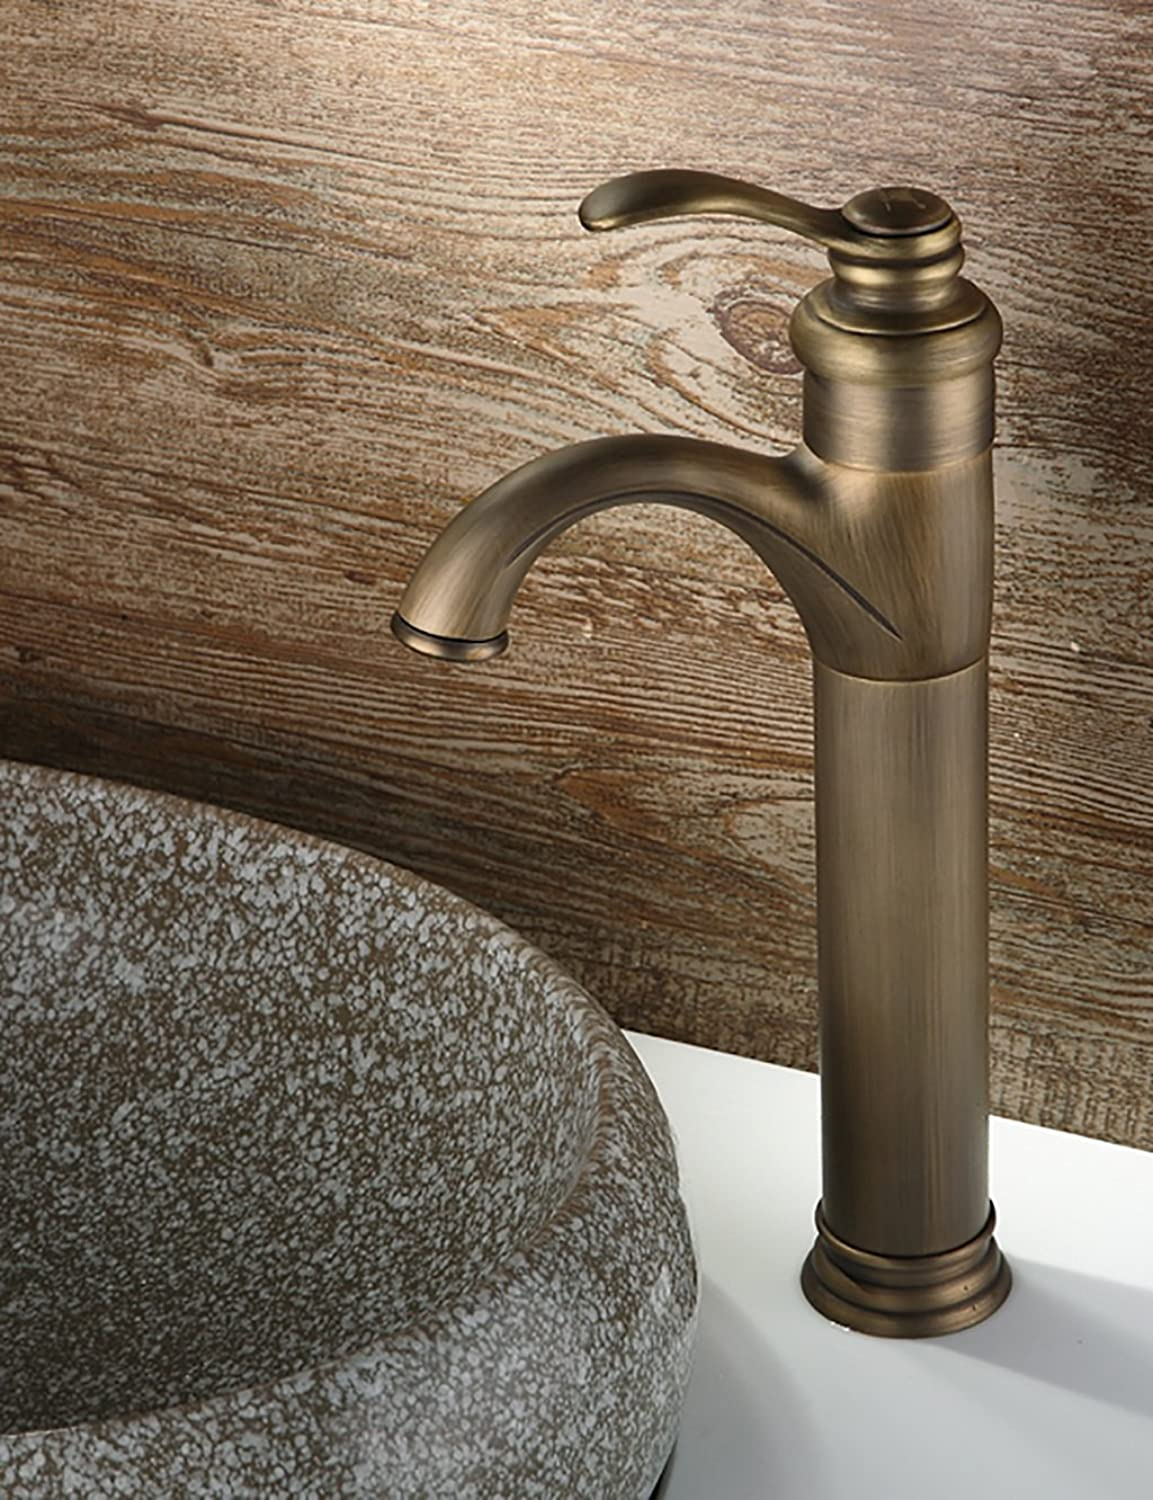 Sun LL European Style Simple Modern Bathroom Restaurant Hotel Faucet Brass Hot And Cold Artistic Basin Single Handle Single Hole Can Be redated Wash Basin